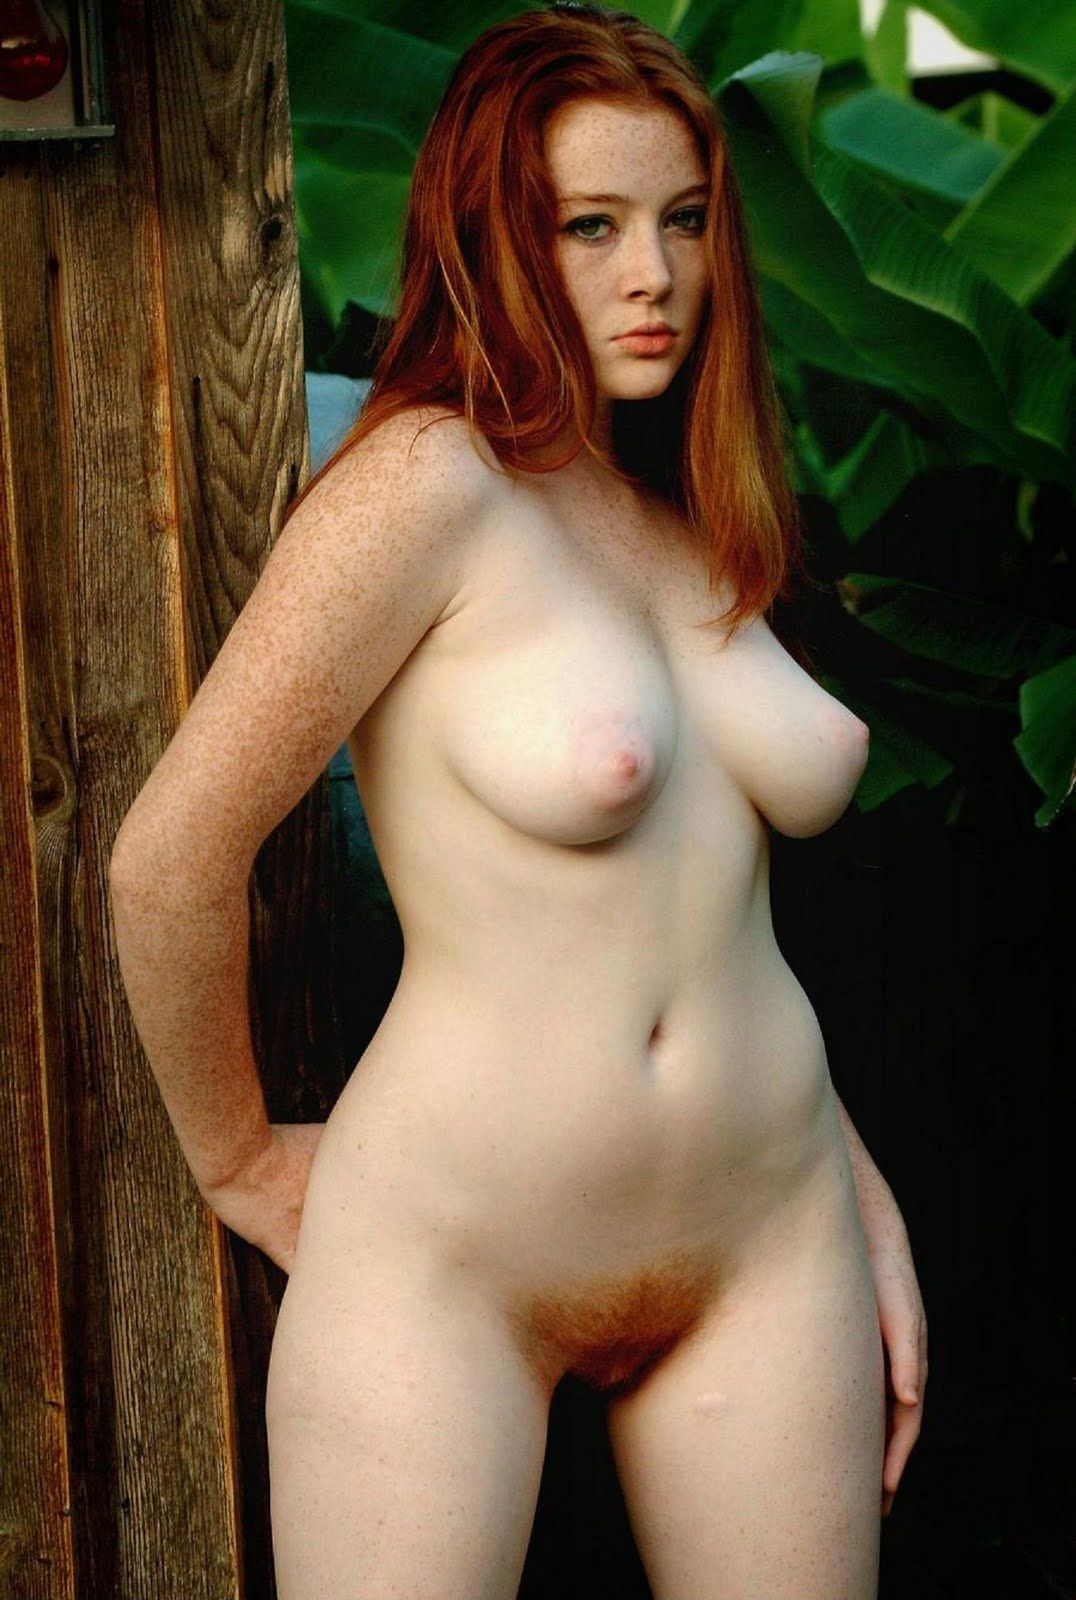 Nude freckled redhead with hairy pussy